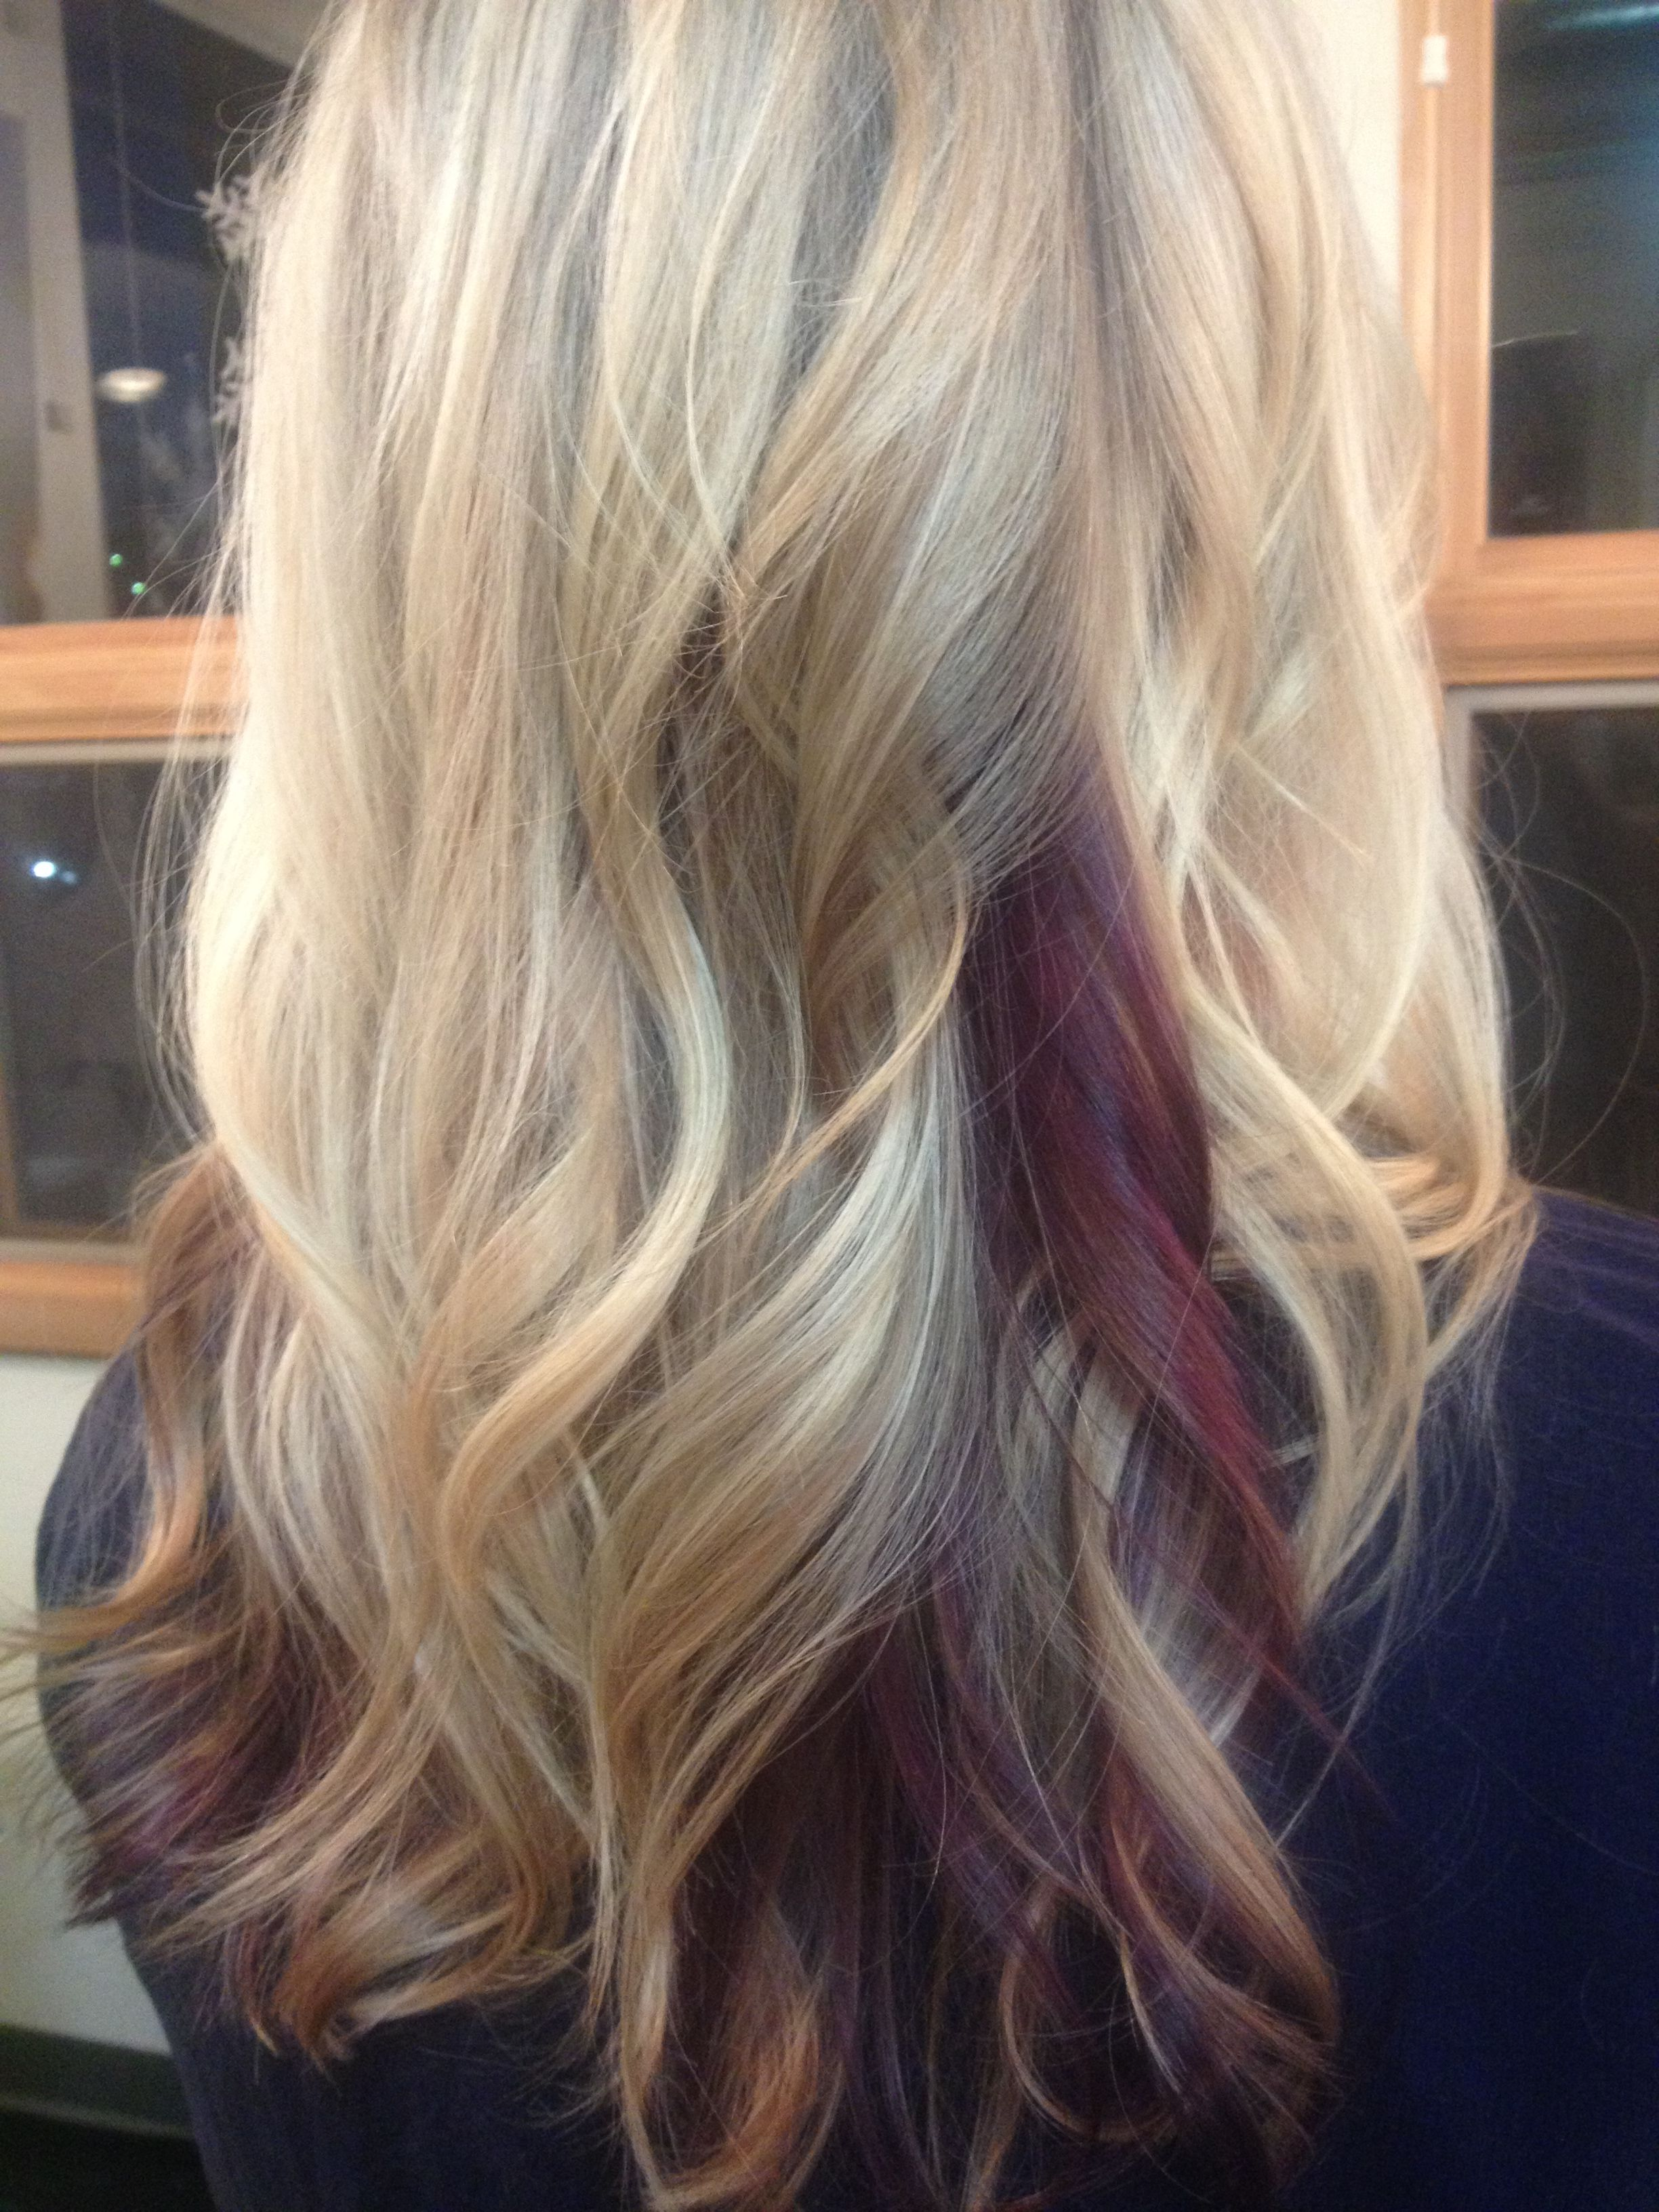 """this amazing blonde wanted some """"fun, yet professional color"""